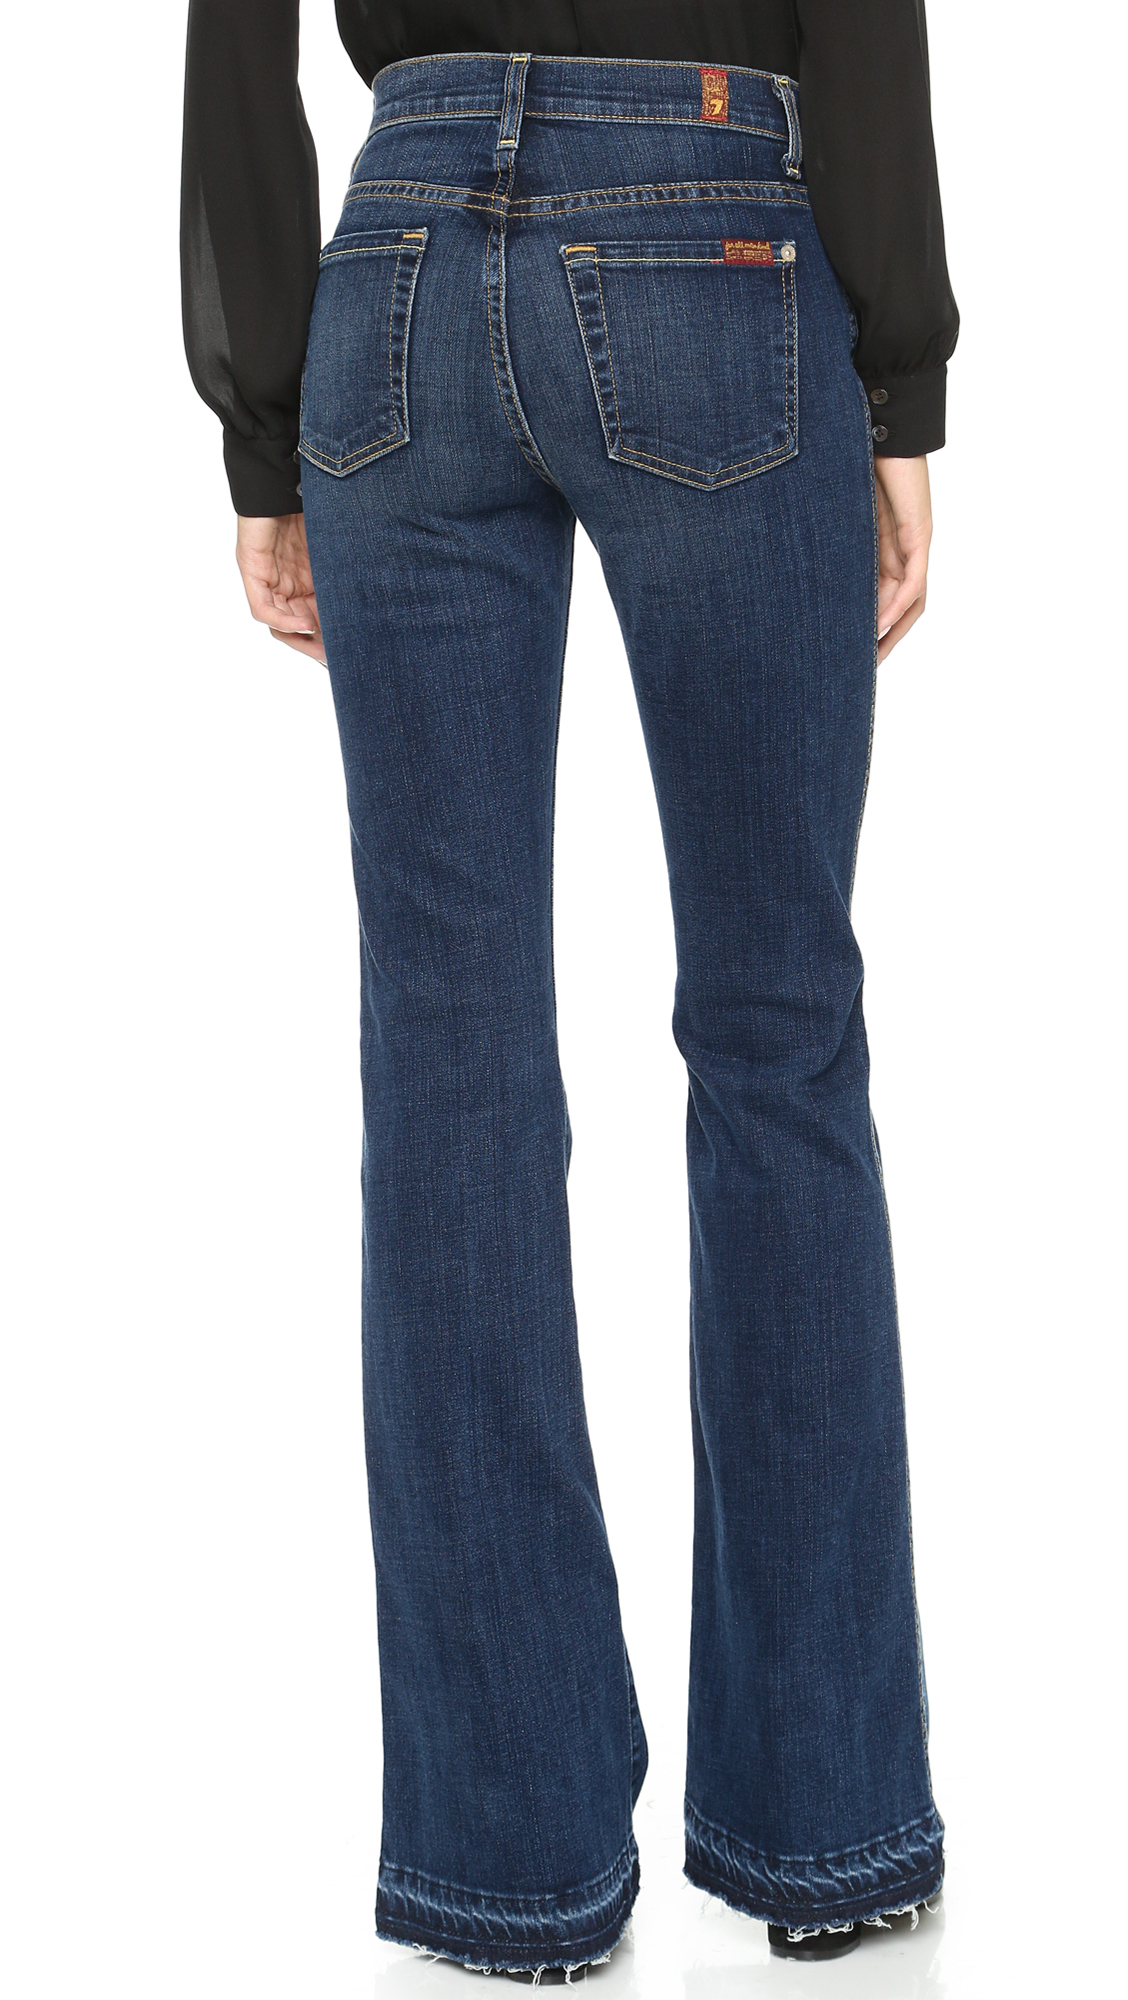 lyst 7 for all mankind high waisted boot cut jeans in blue. Black Bedroom Furniture Sets. Home Design Ideas